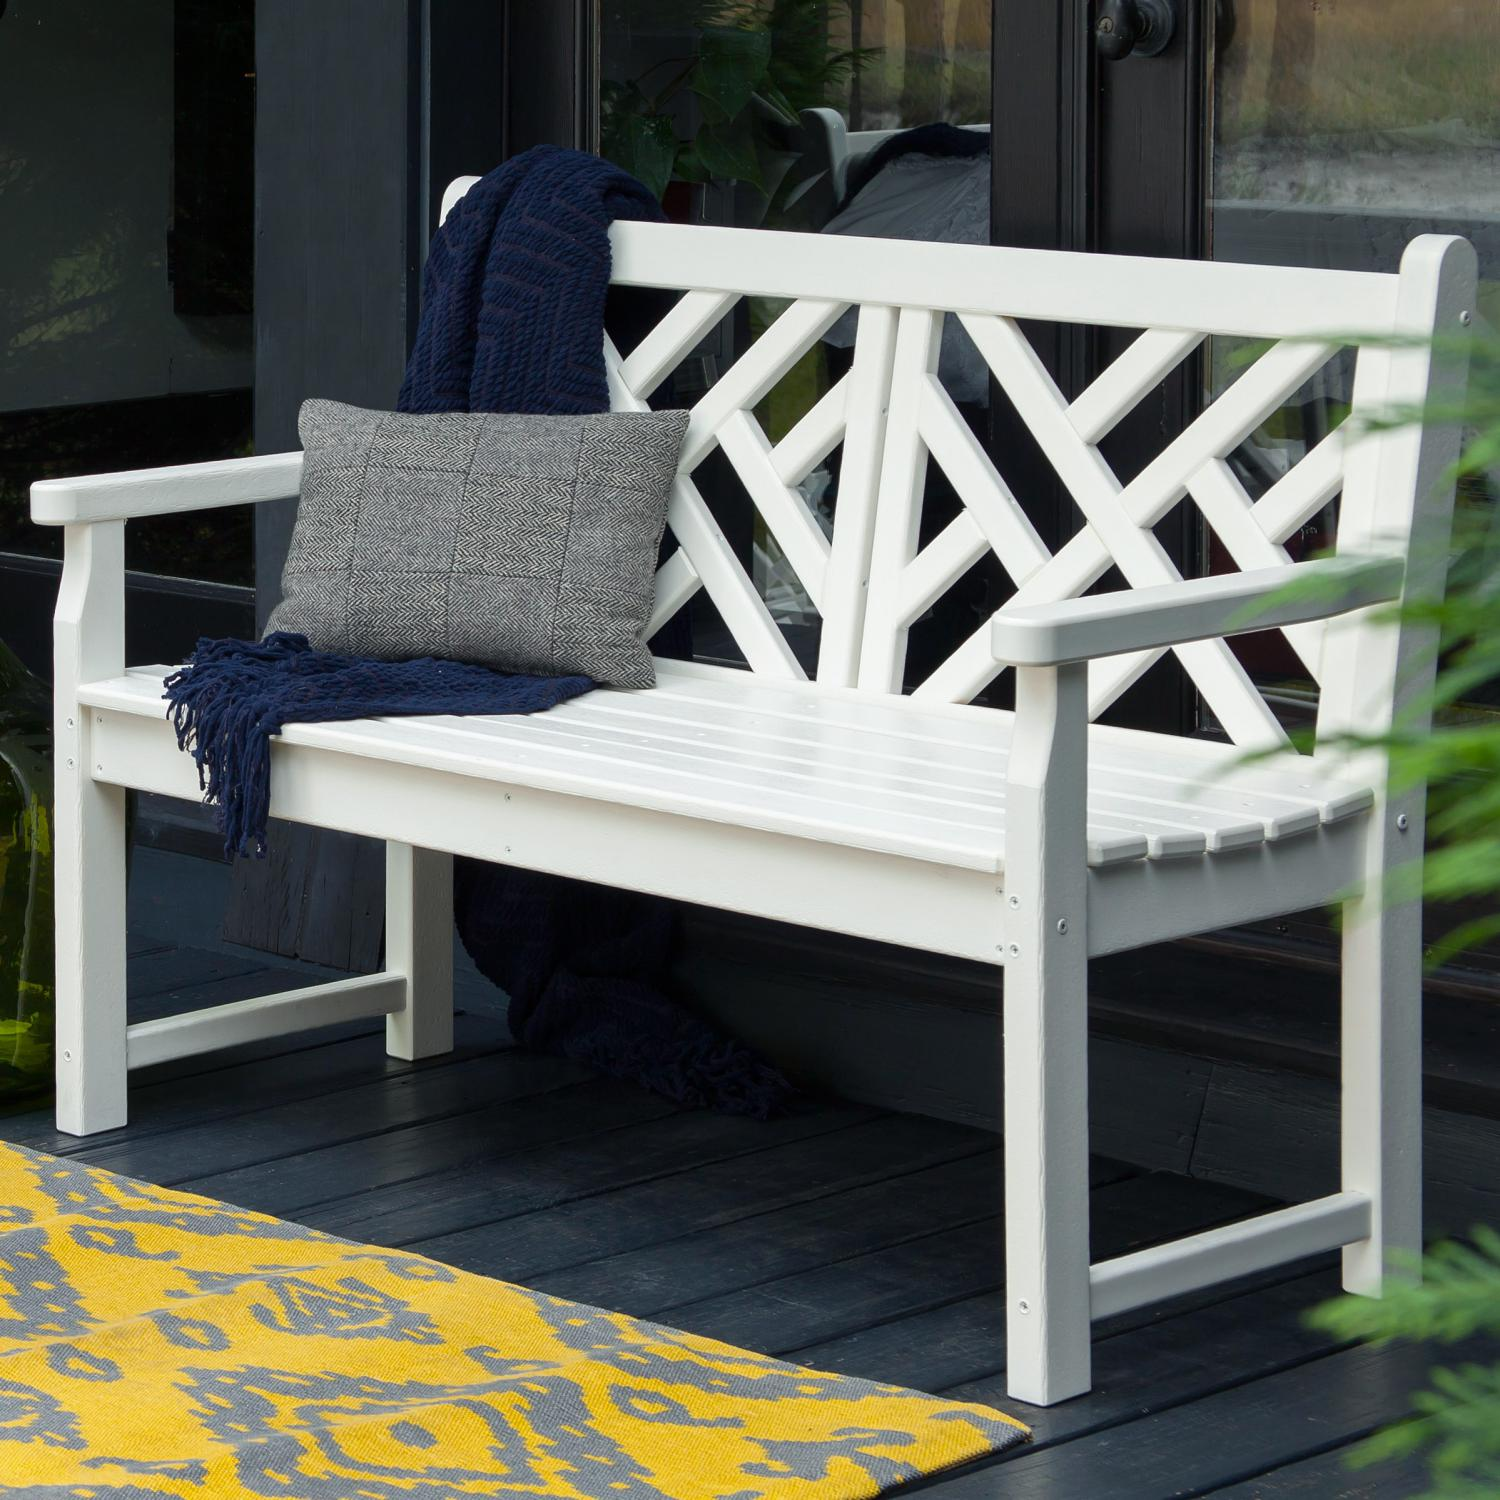 Polywood Chippendale White Recycled Plastic Wood 48 Inch Patio